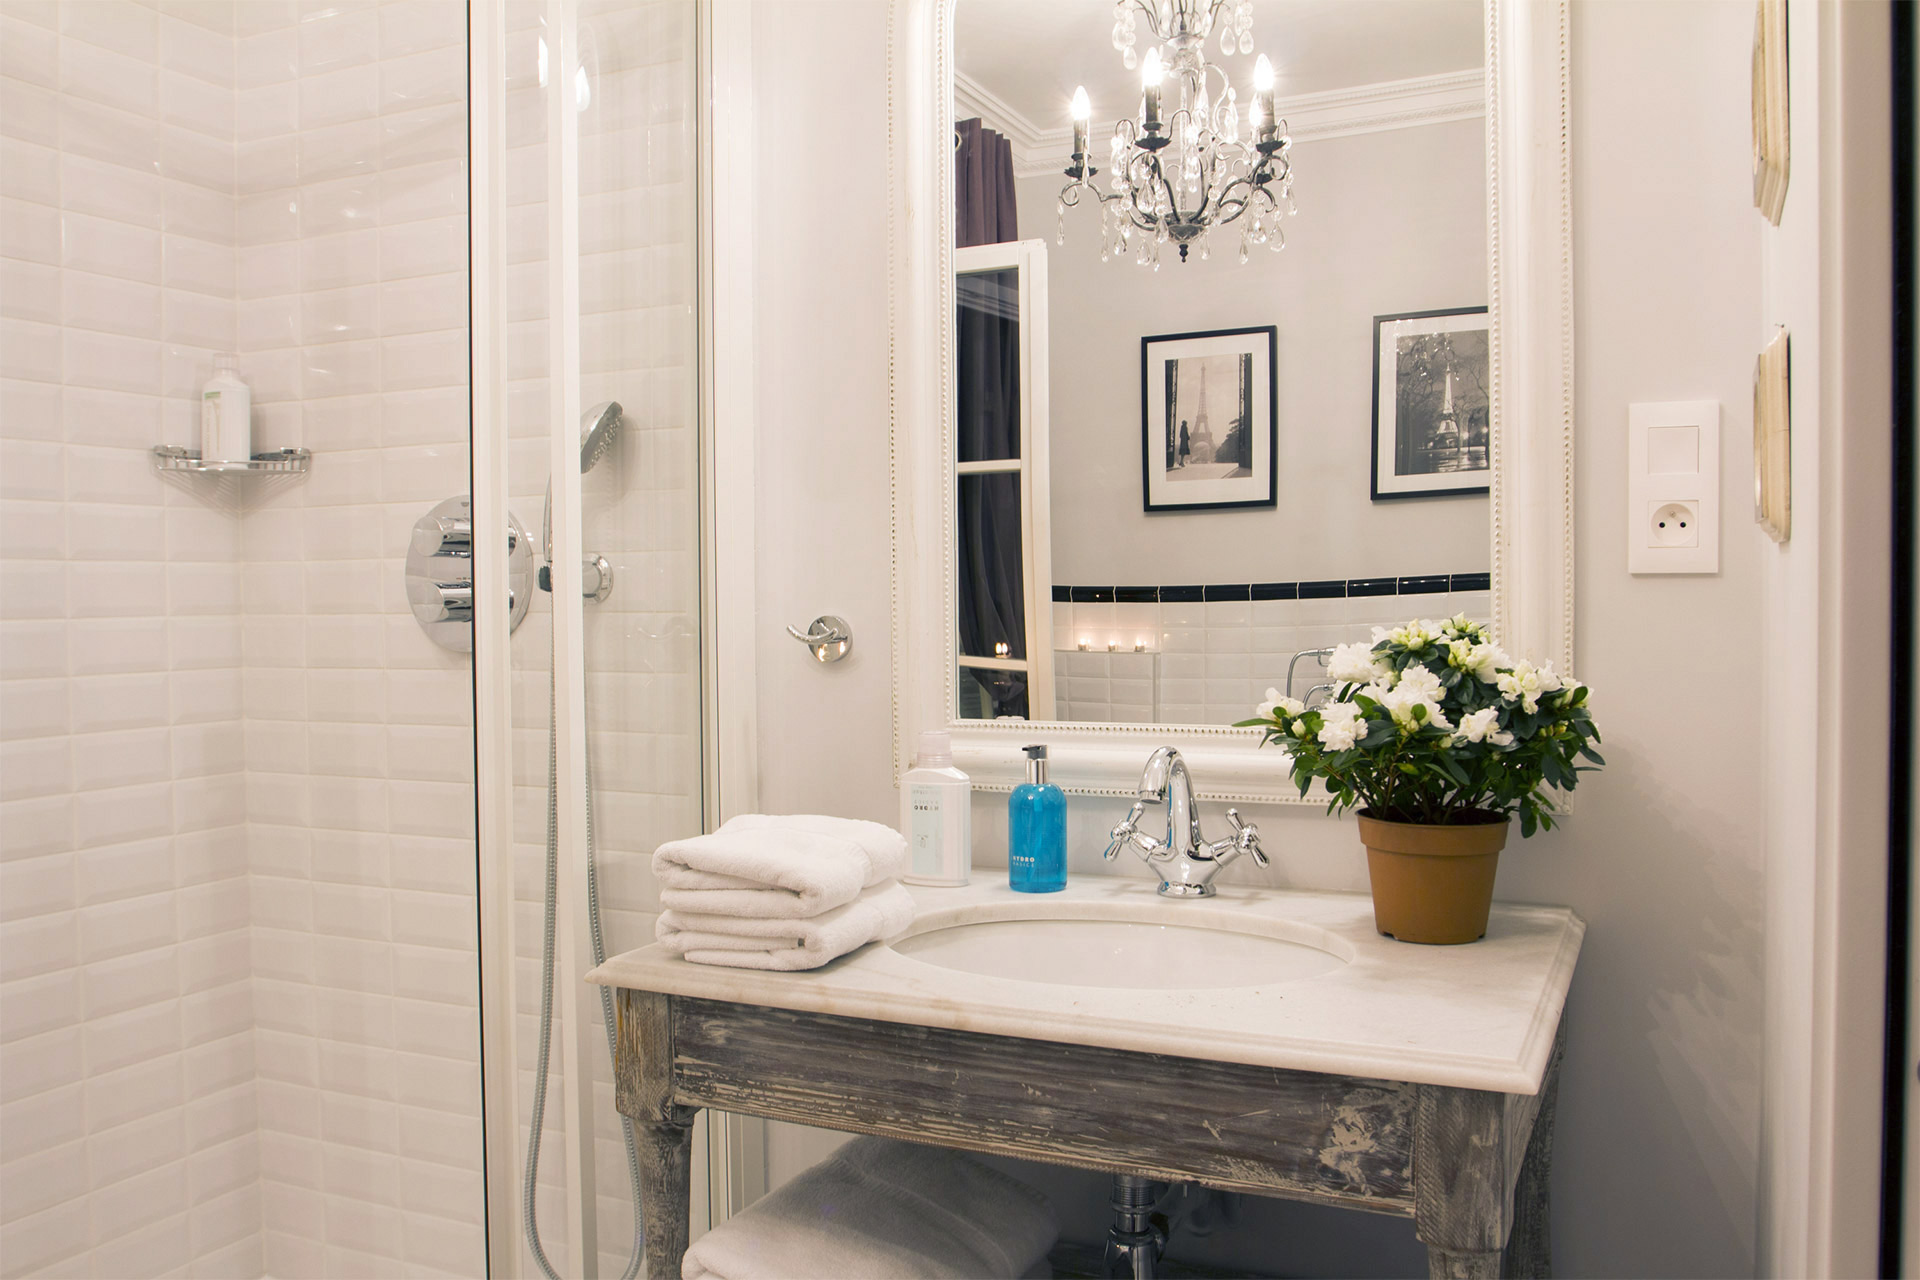 Shower and sink in the mirror in the Chambertin vacation rental offered by Paris Perfect